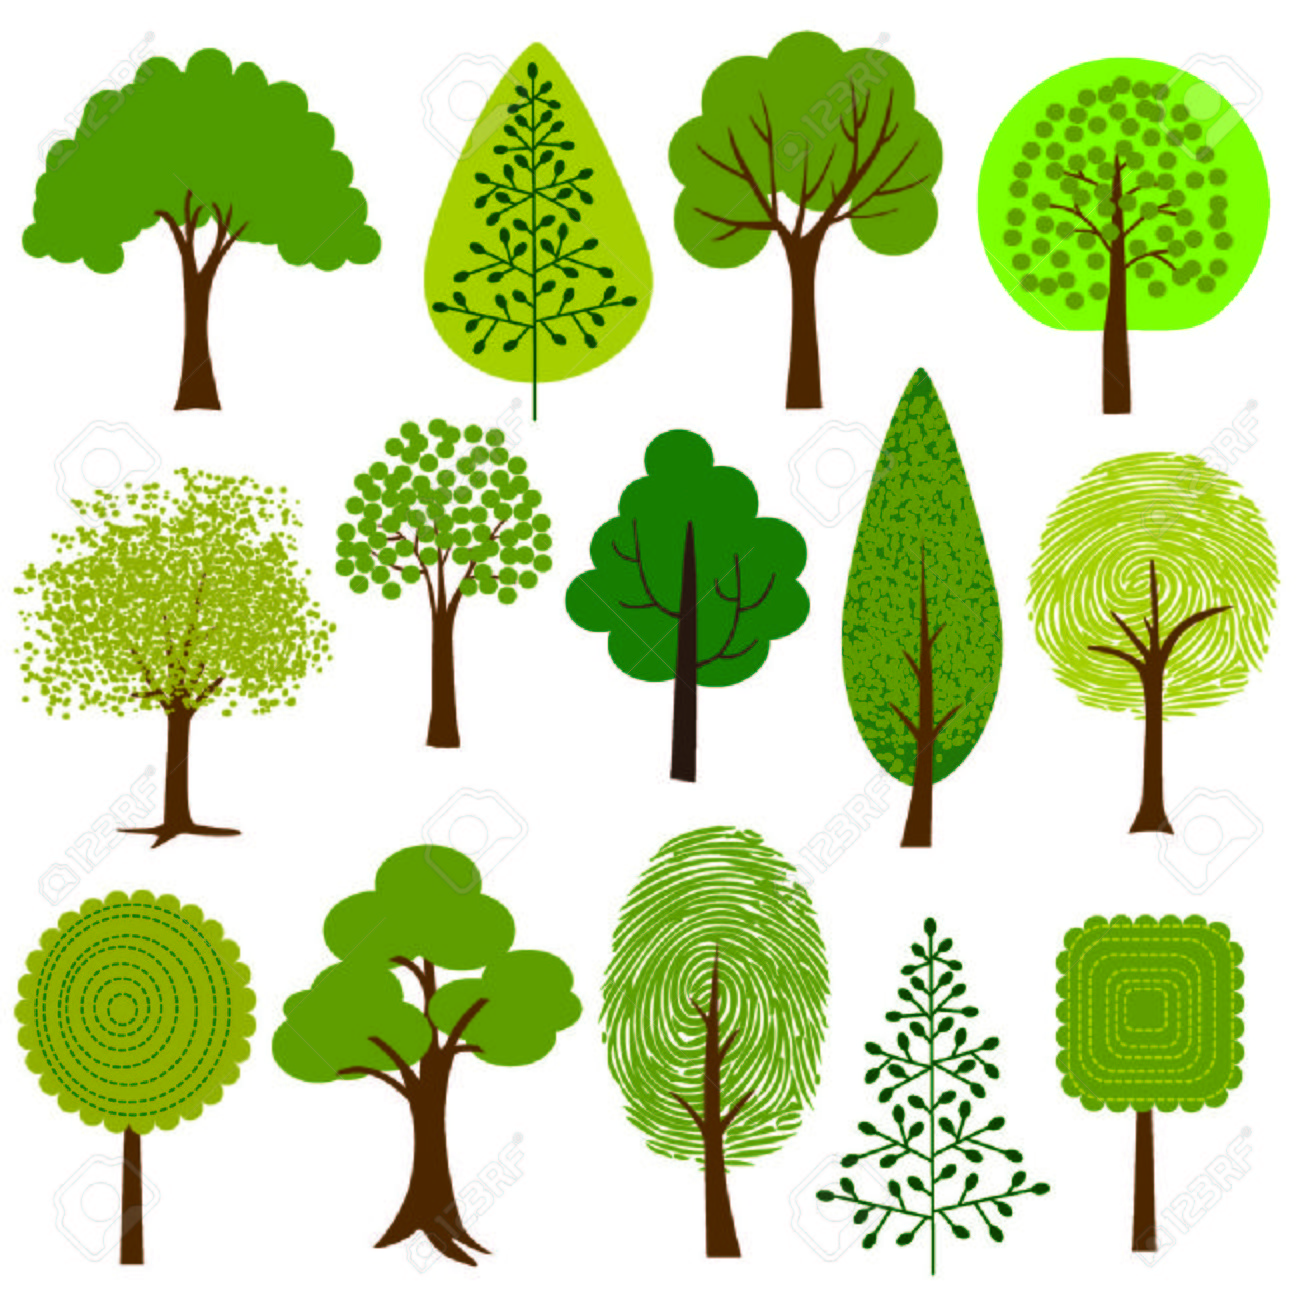 trees clipart.